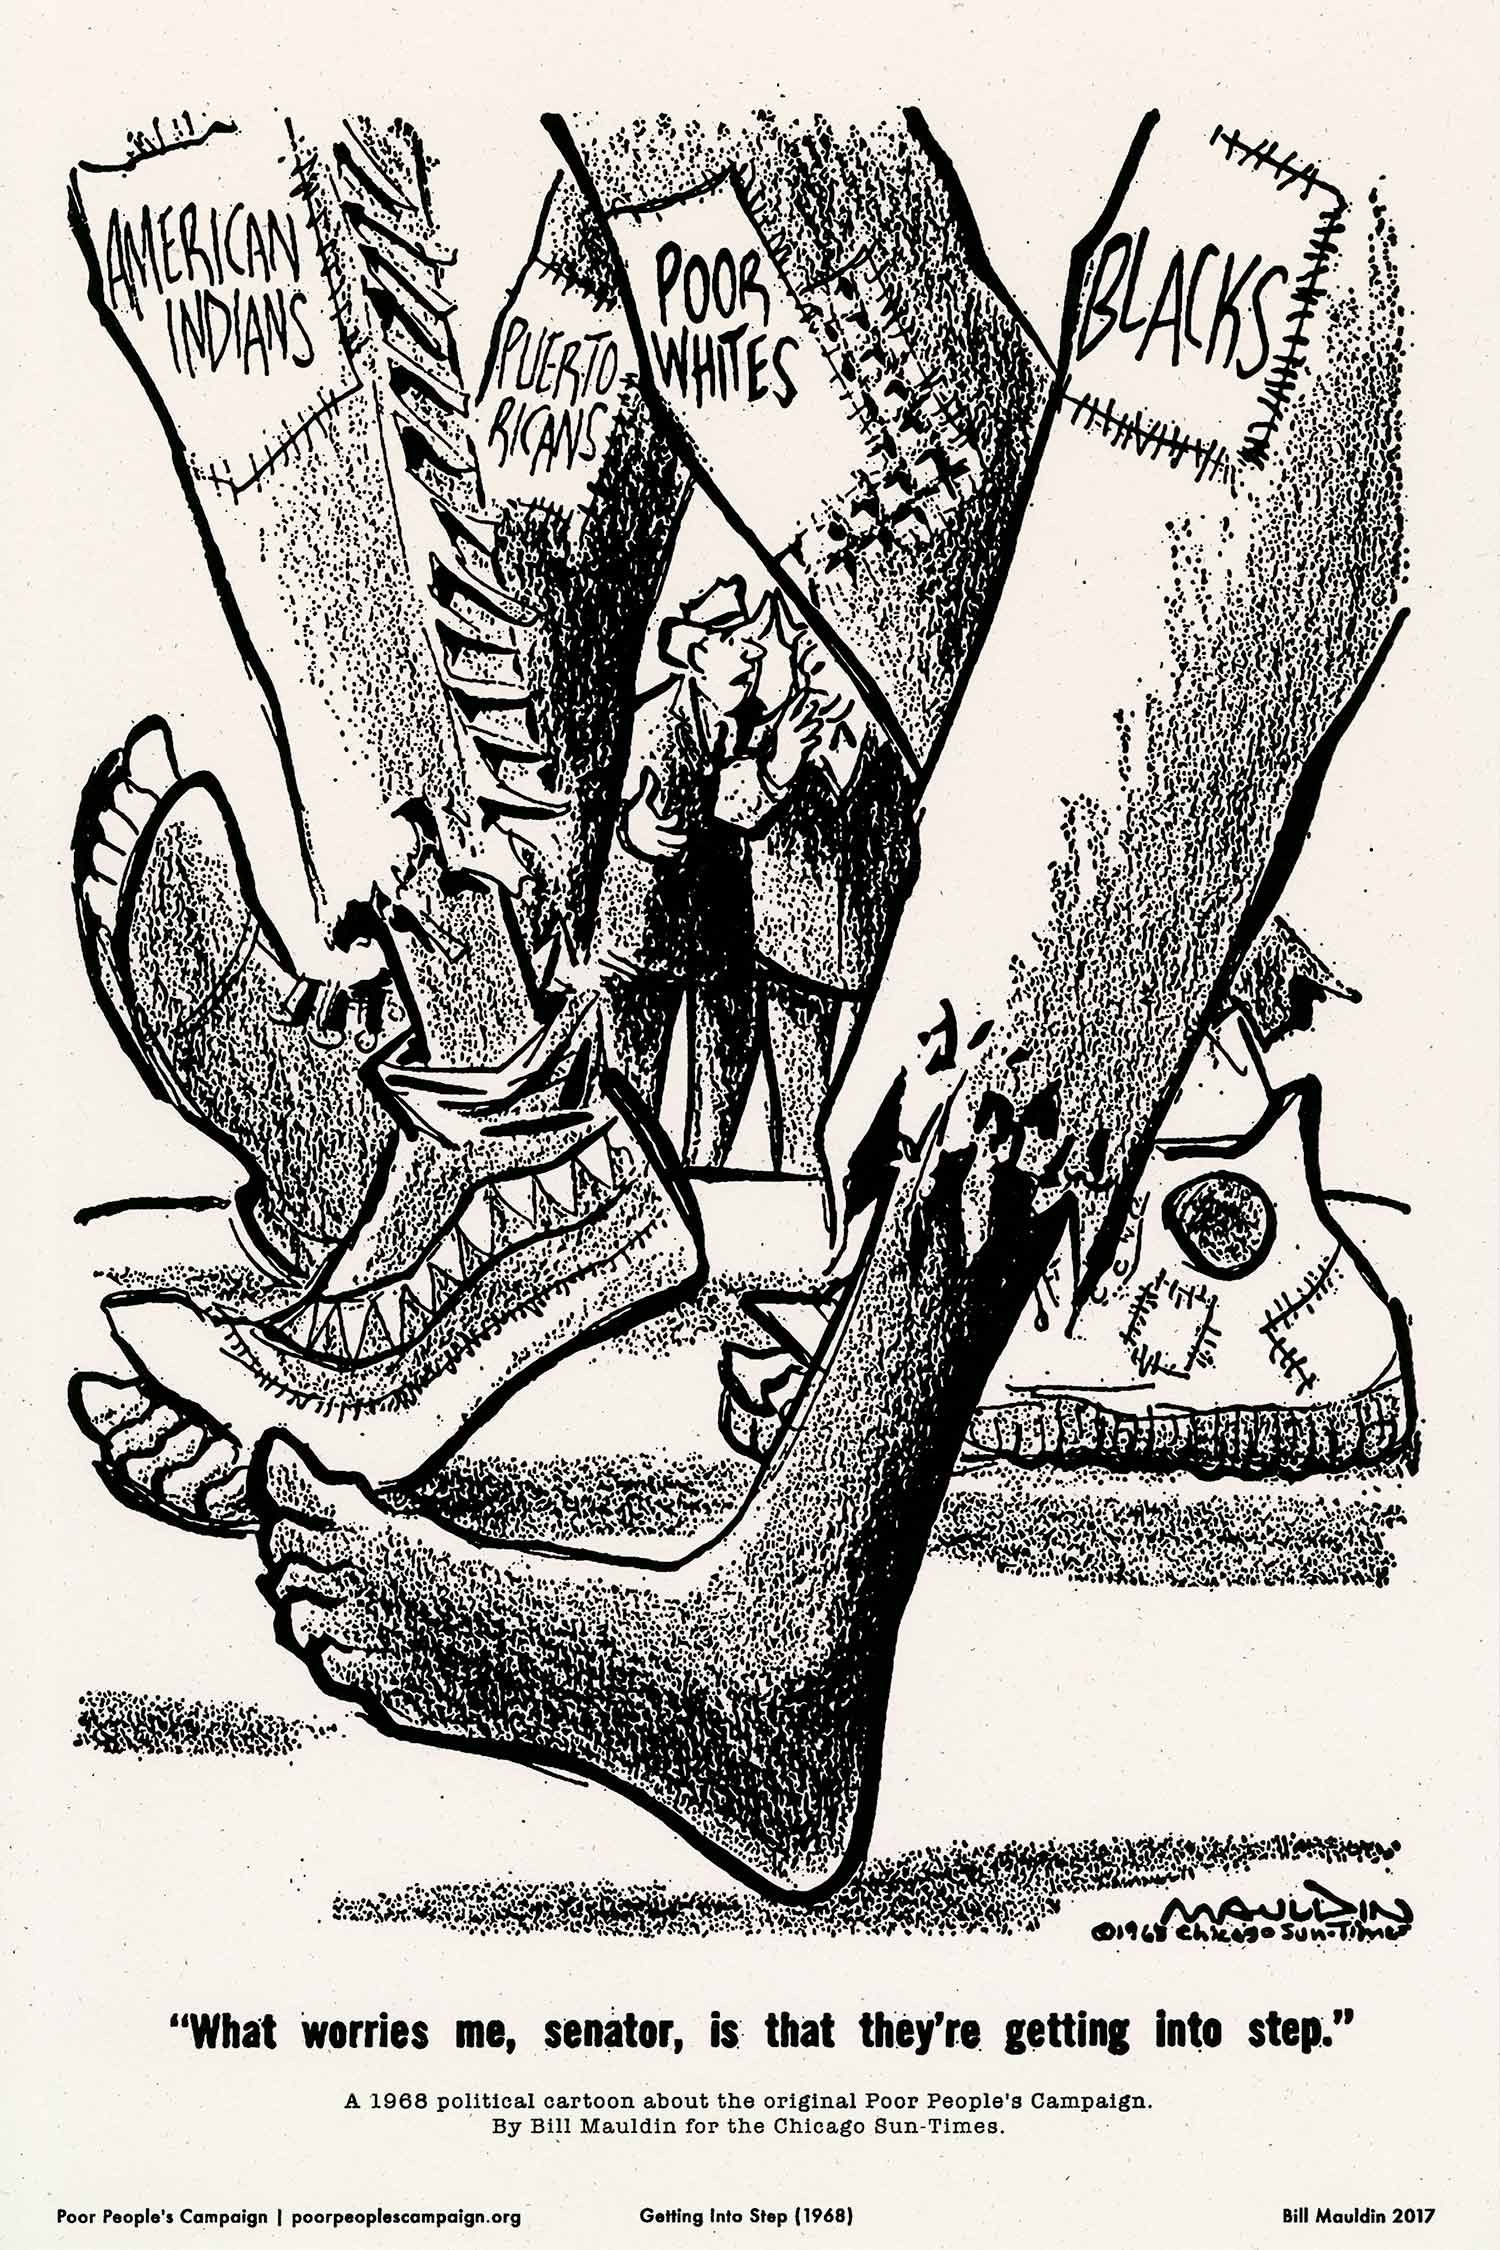 """Bill Mauldin's 1968 political cartoon """"Getting into Step"""" about the original Poor People's Campaign was reprinted for educational purposes with an awareness of the problematic tropes used in the print, See https://justseeds.org/graphic/getting-into-step-1968/."""